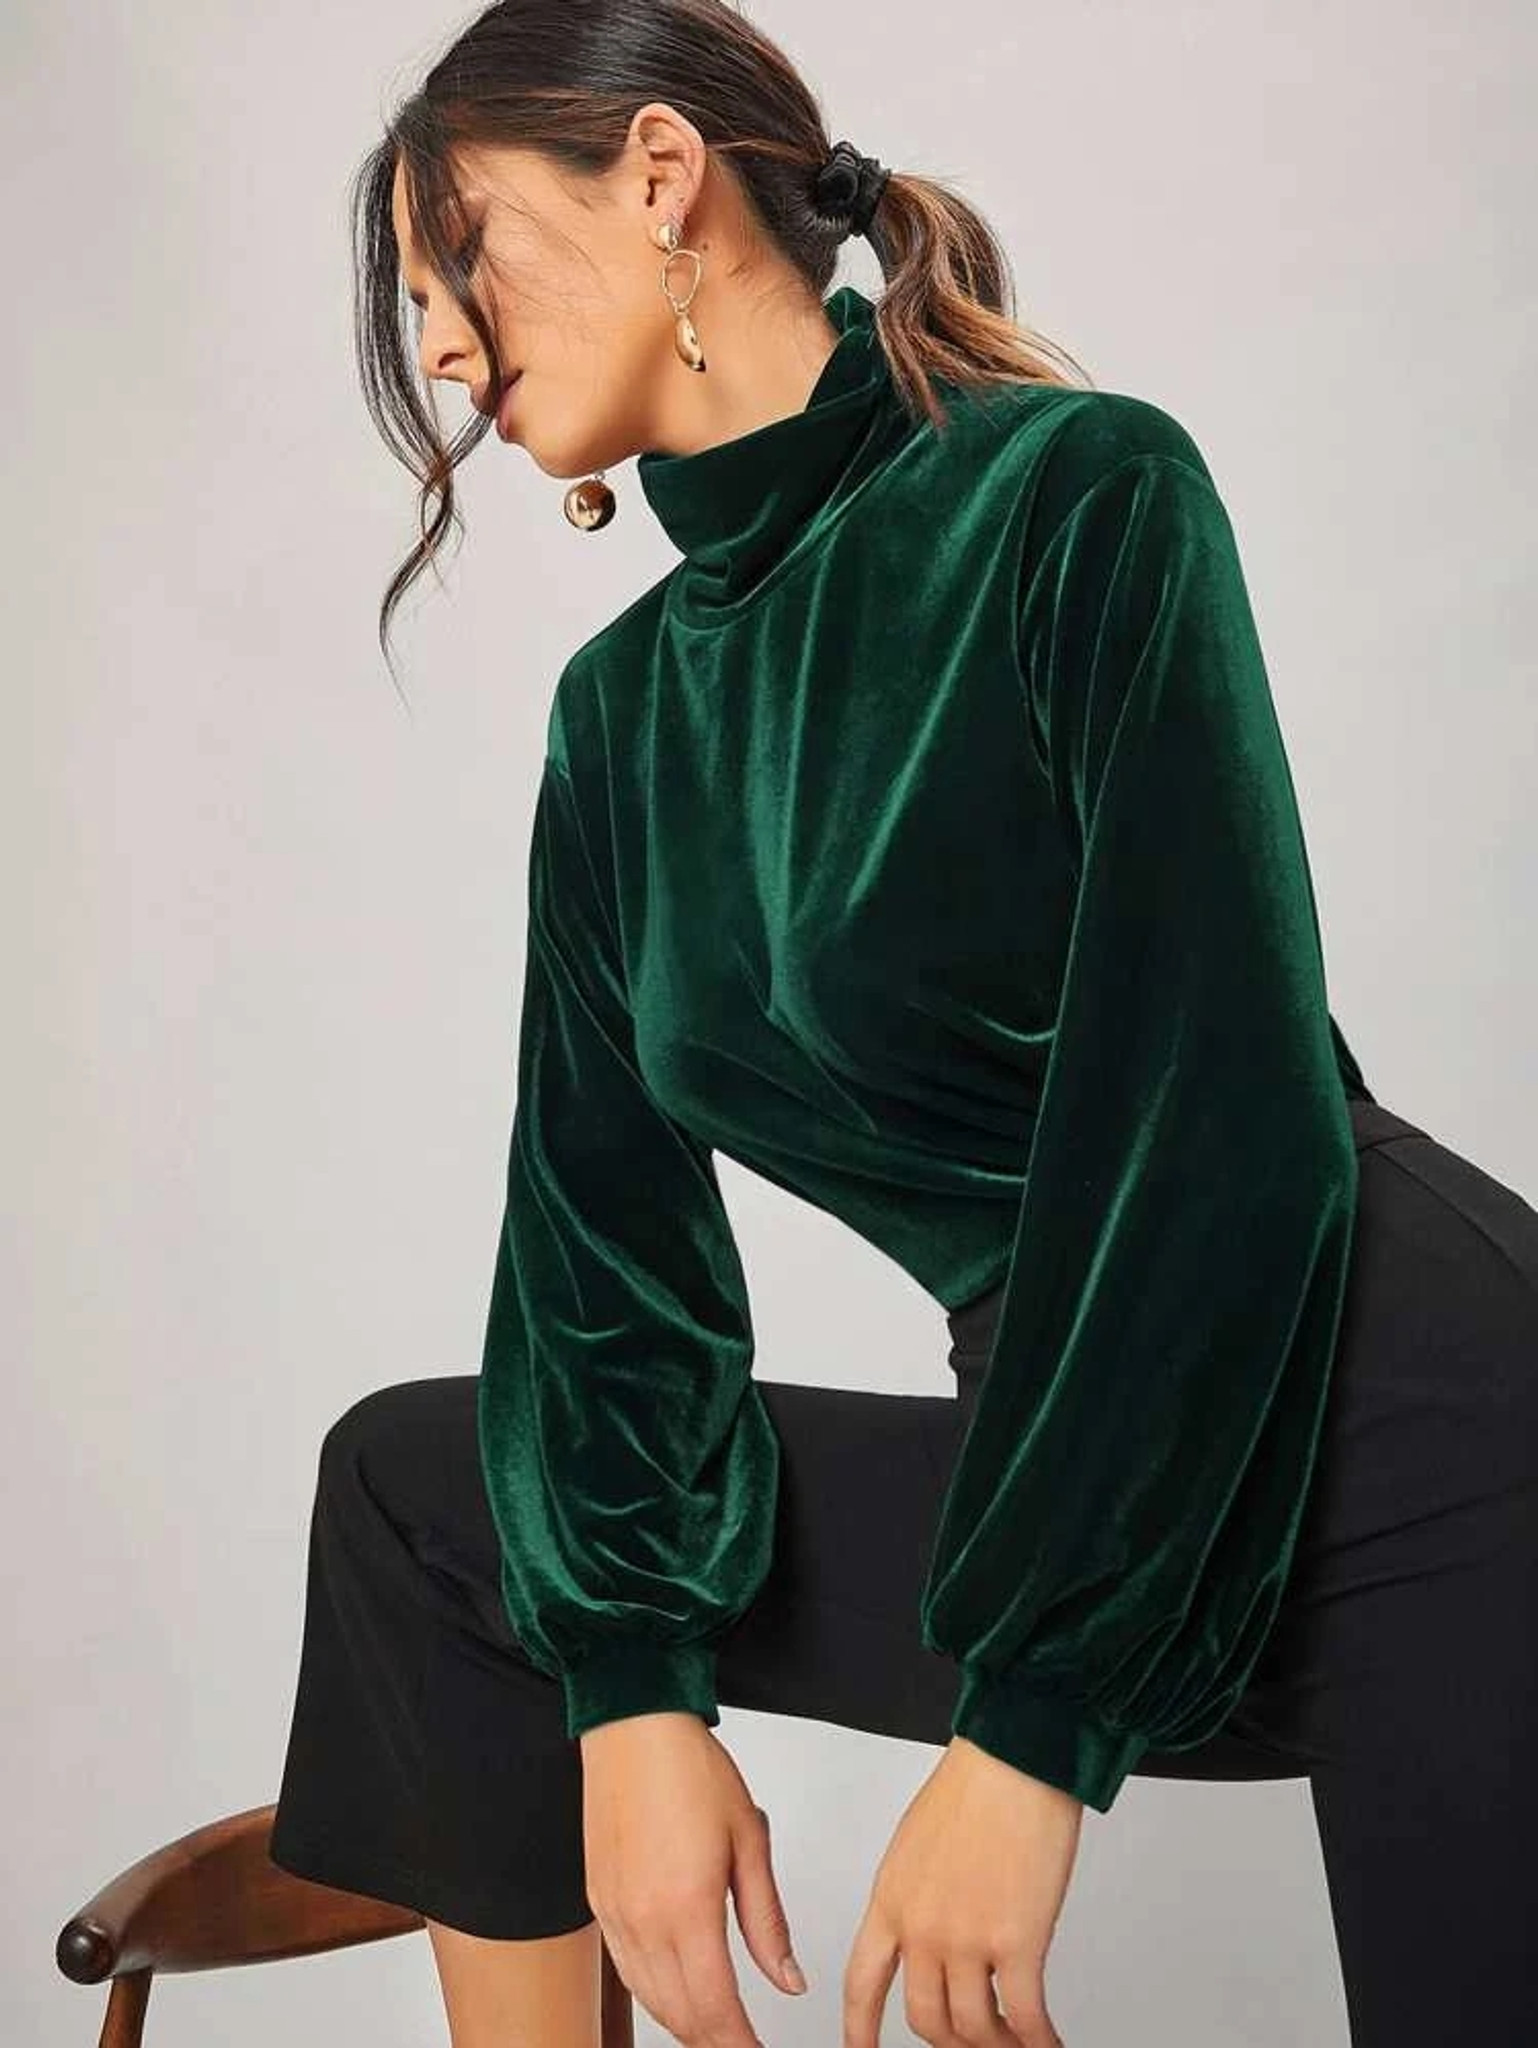 Fifth Avenue Womens High Neck Detail Velvet Stitched Western Top - FAWWT14